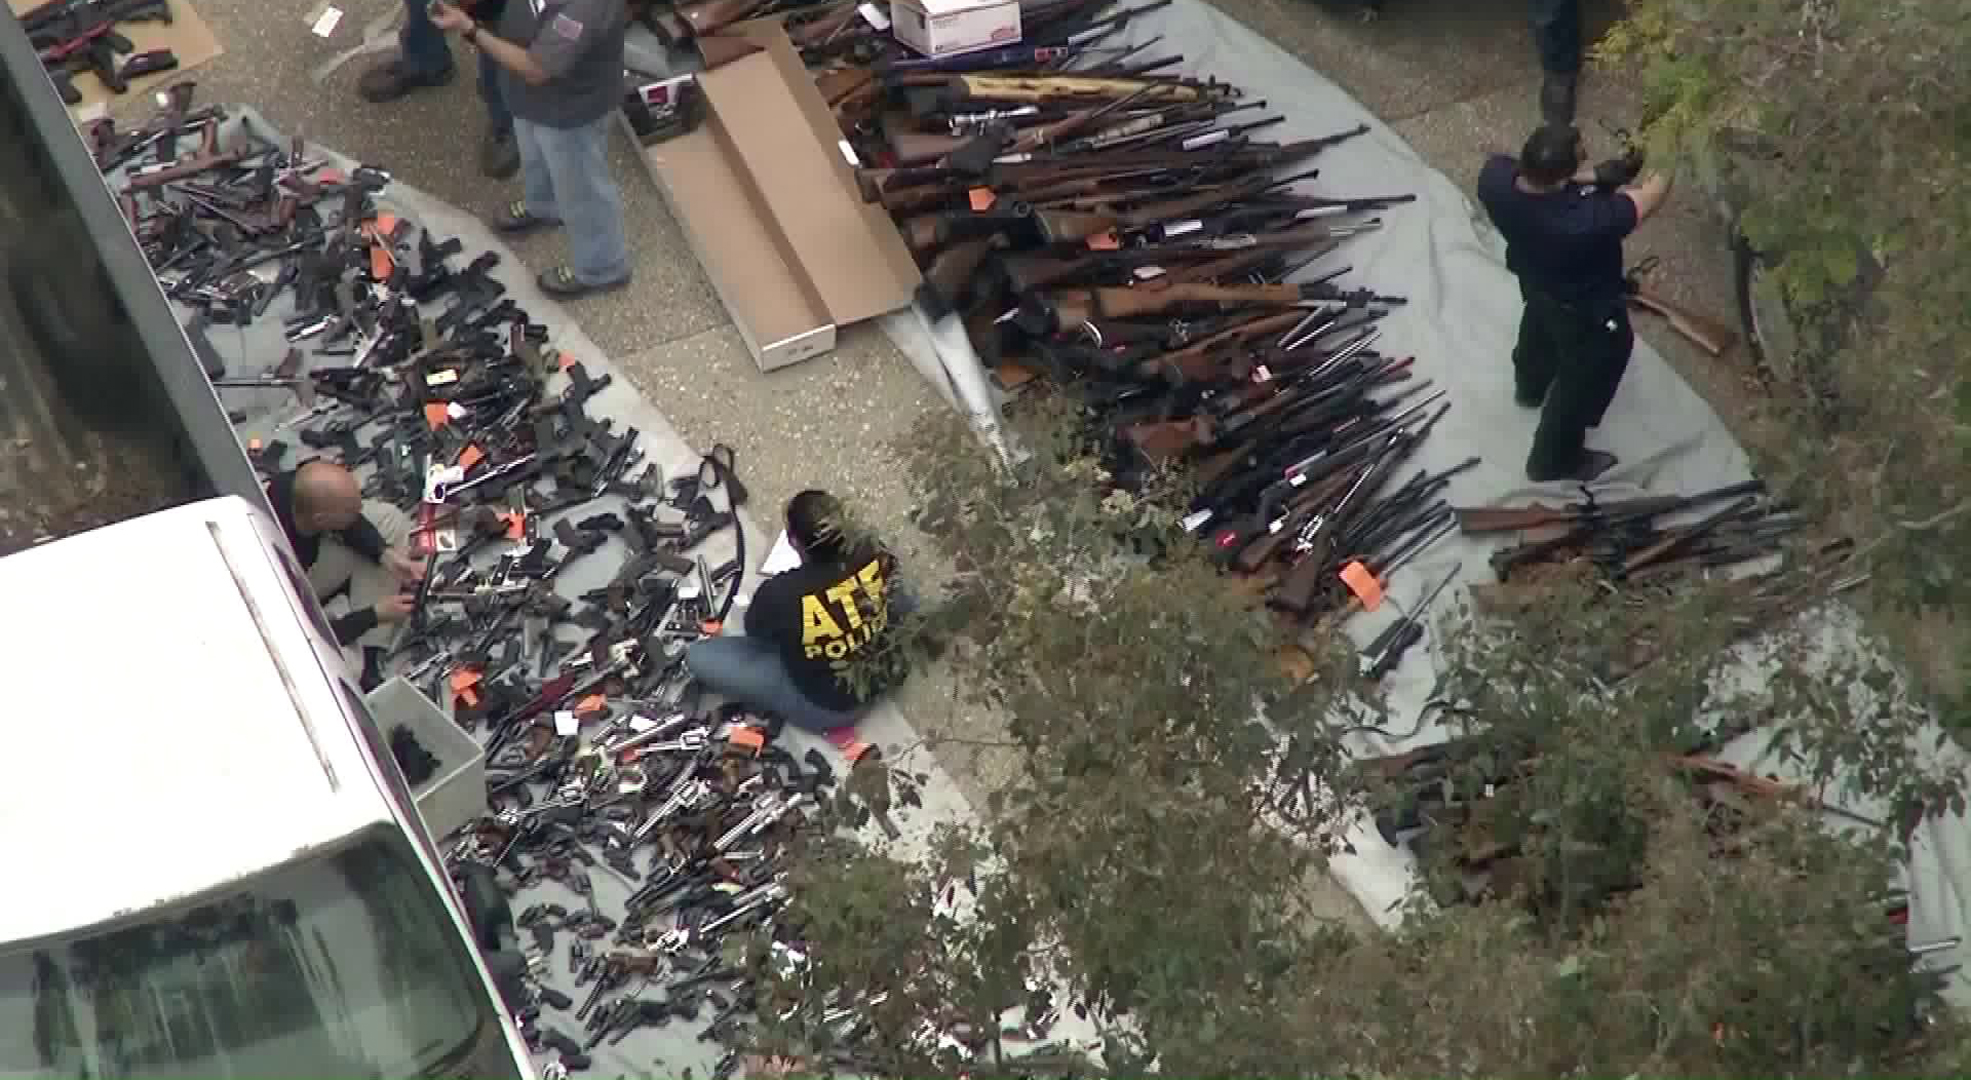 ATF officials investigate after dozens of guns are found in a Bel-Air home on May 8, 2019. (Credit: KTLA)